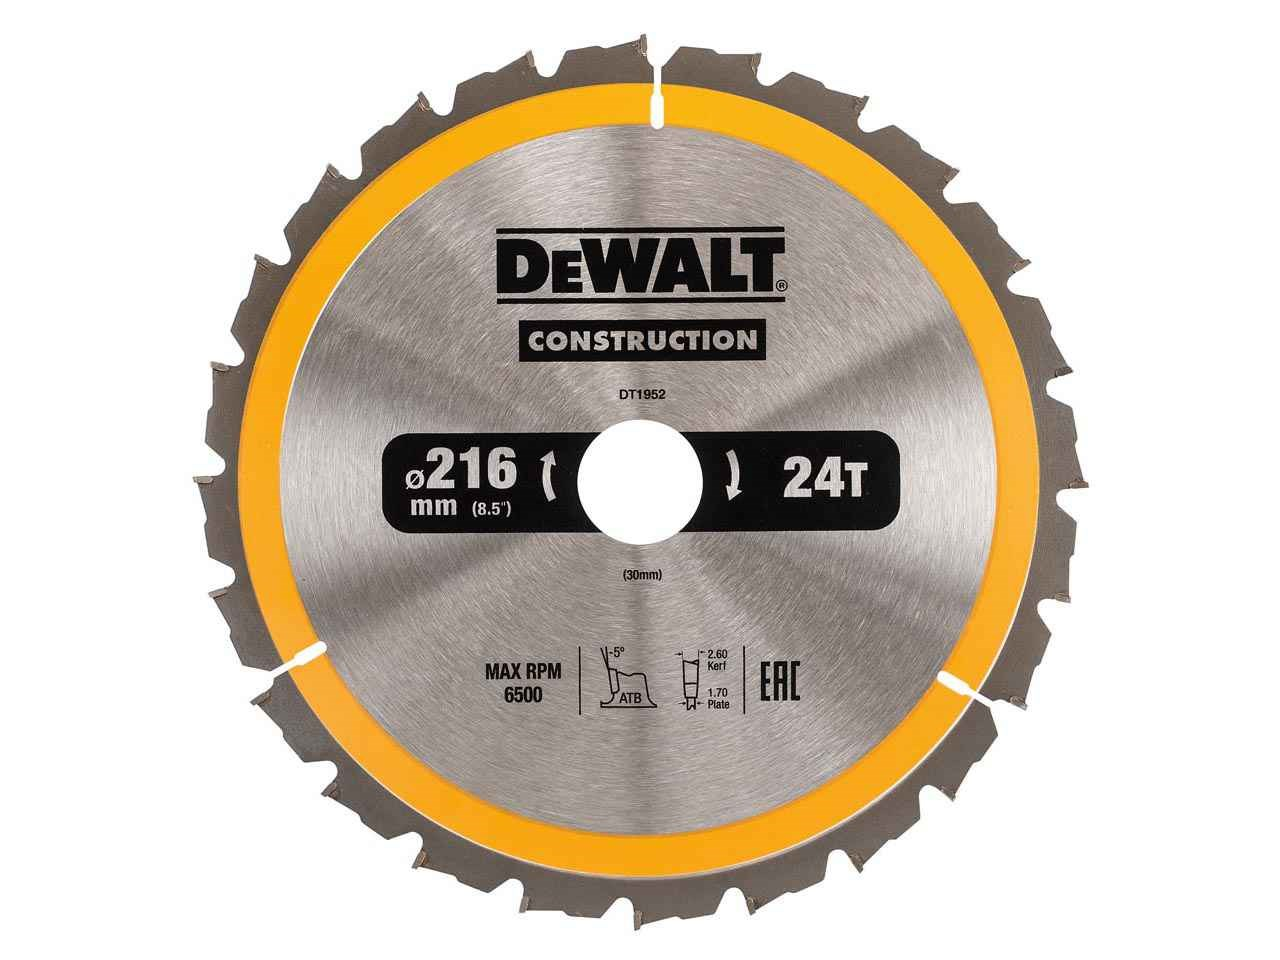 Dewalt dt1952qz construction circular saw blade 216mm x 30mm 24t keyboard keysfo